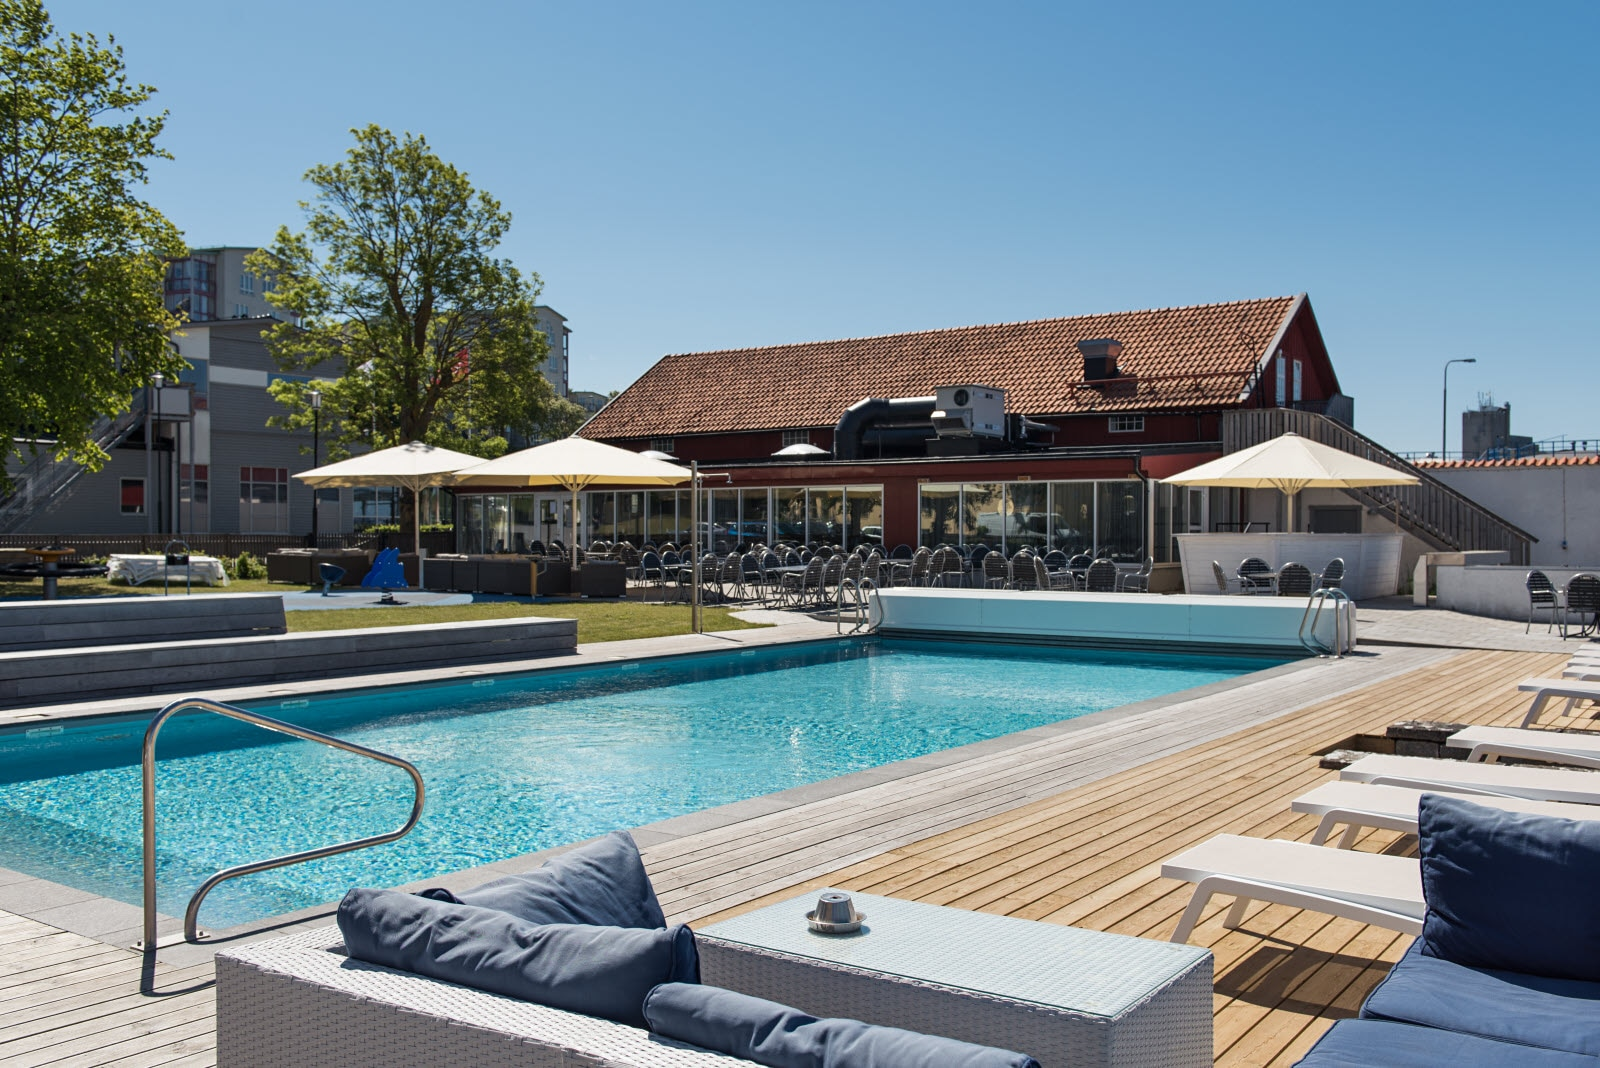 scandic-visby-restaurant-pool.jpg